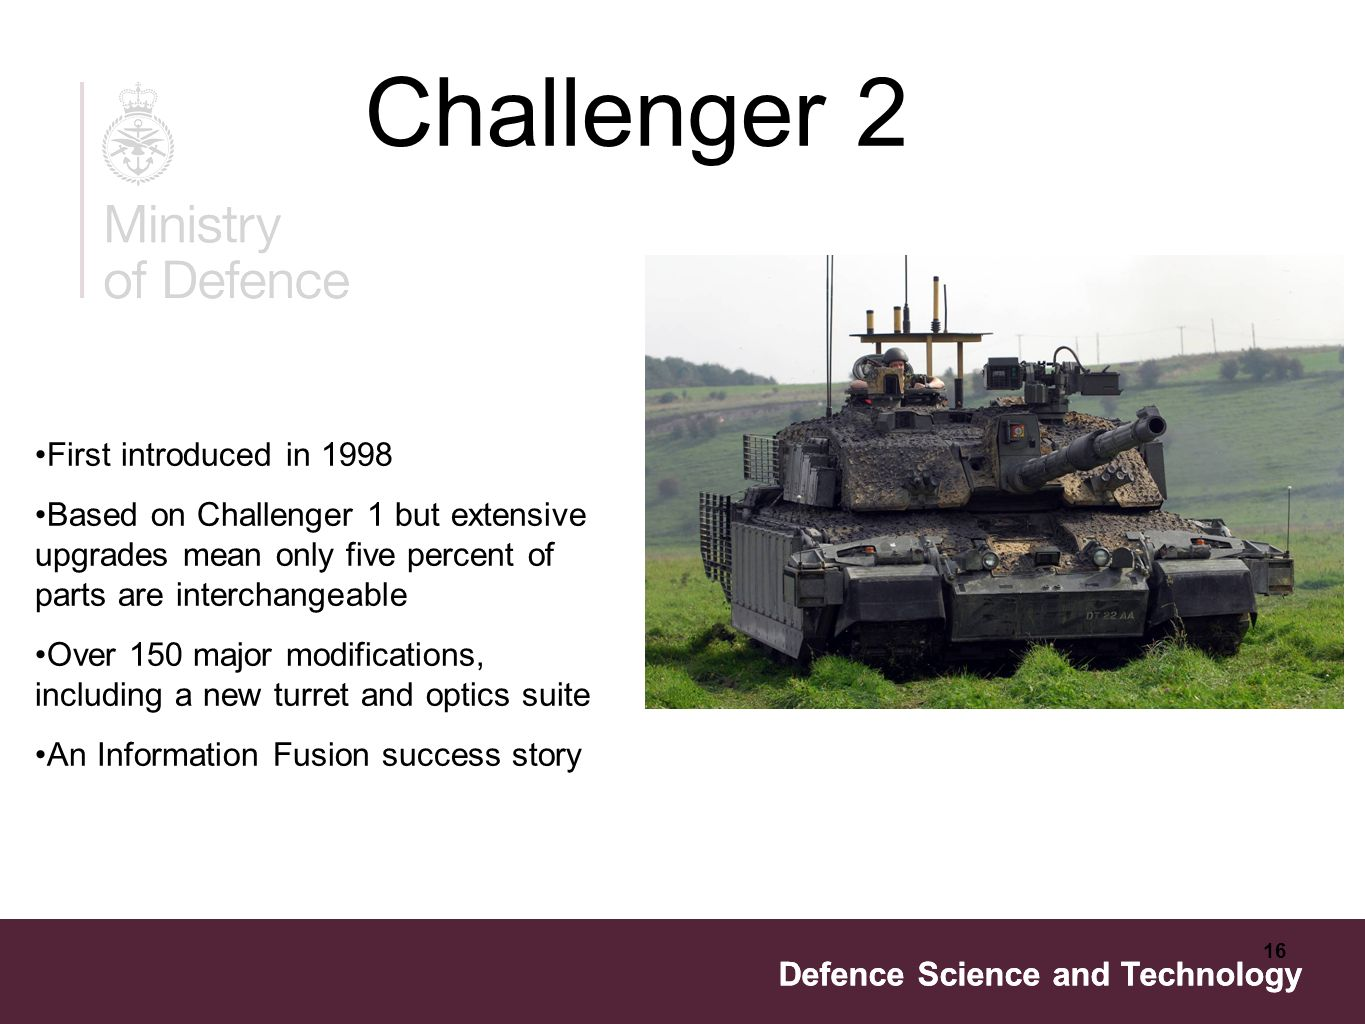 Defence Science and Technology 16 Defence Science and Technology Challenger 2 First introduced in 1998 Based on Challenger 1 but extensive upgrades mean only five percent of parts are interchangeable Over 150 major modifications, including a new turret and optics suite An Information Fusion success story